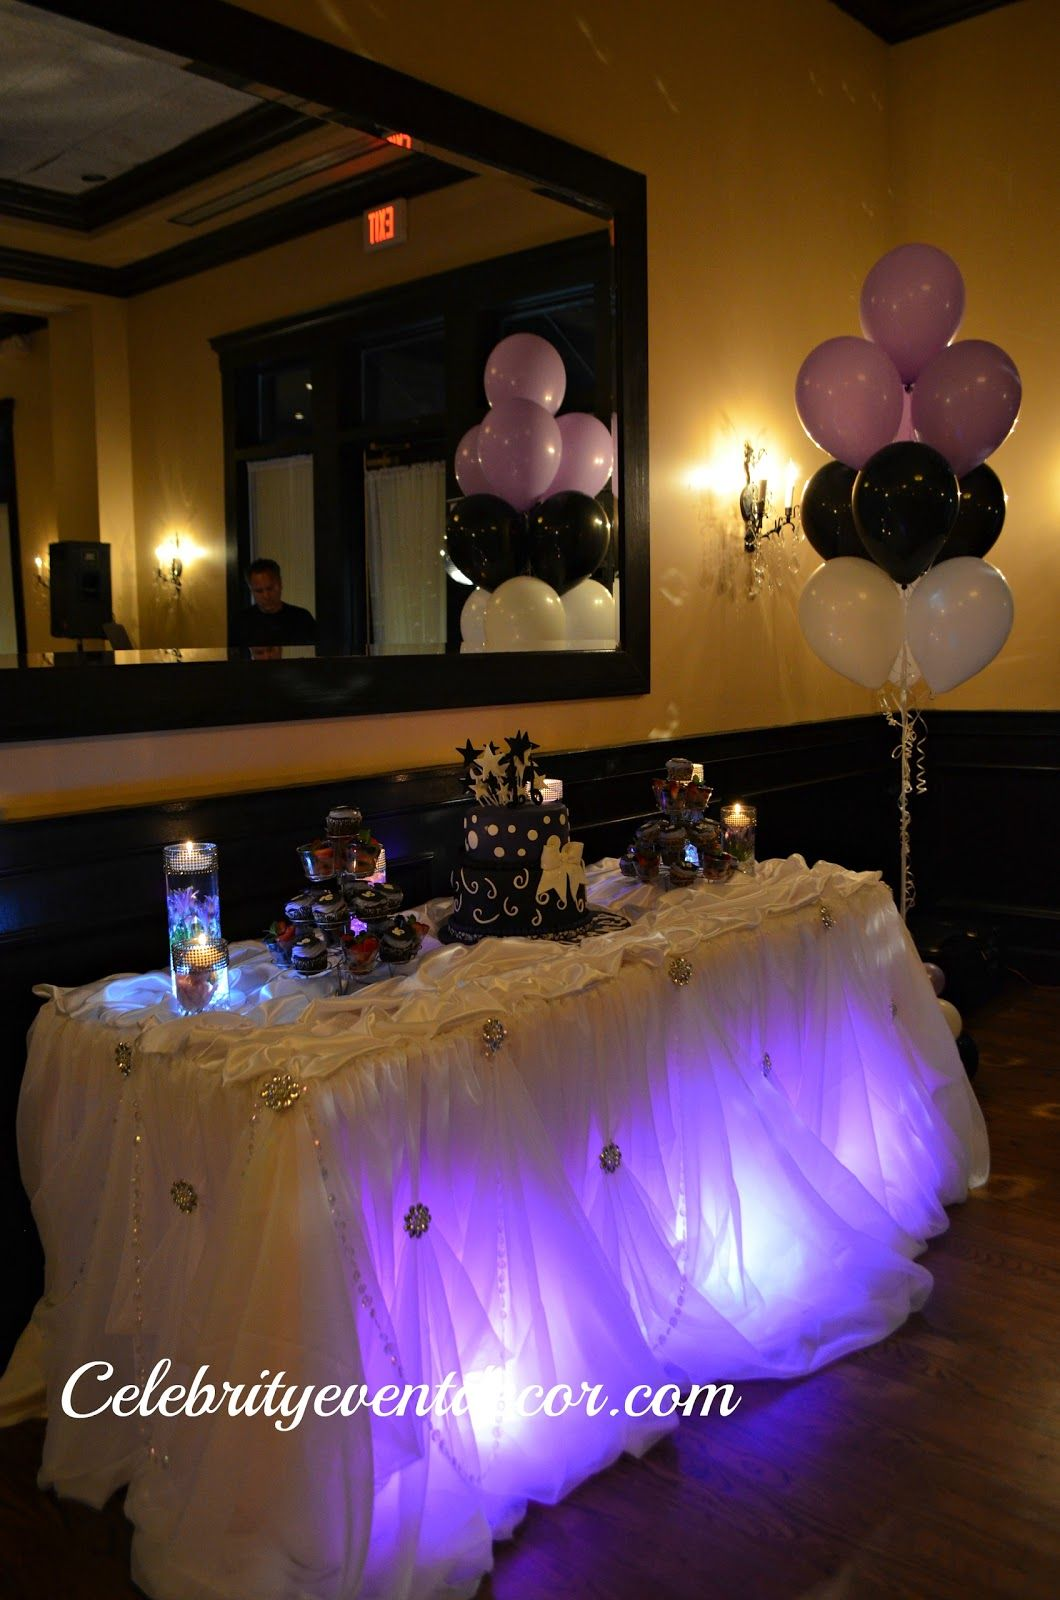 Sweet 16 Balloons Lights Cake Table Decor Cinderella Skirt Fresh Flowers Centerpieces Entran Sweet 16 Decorations Sweet 16 Birthday Party Sweet 16 Parties